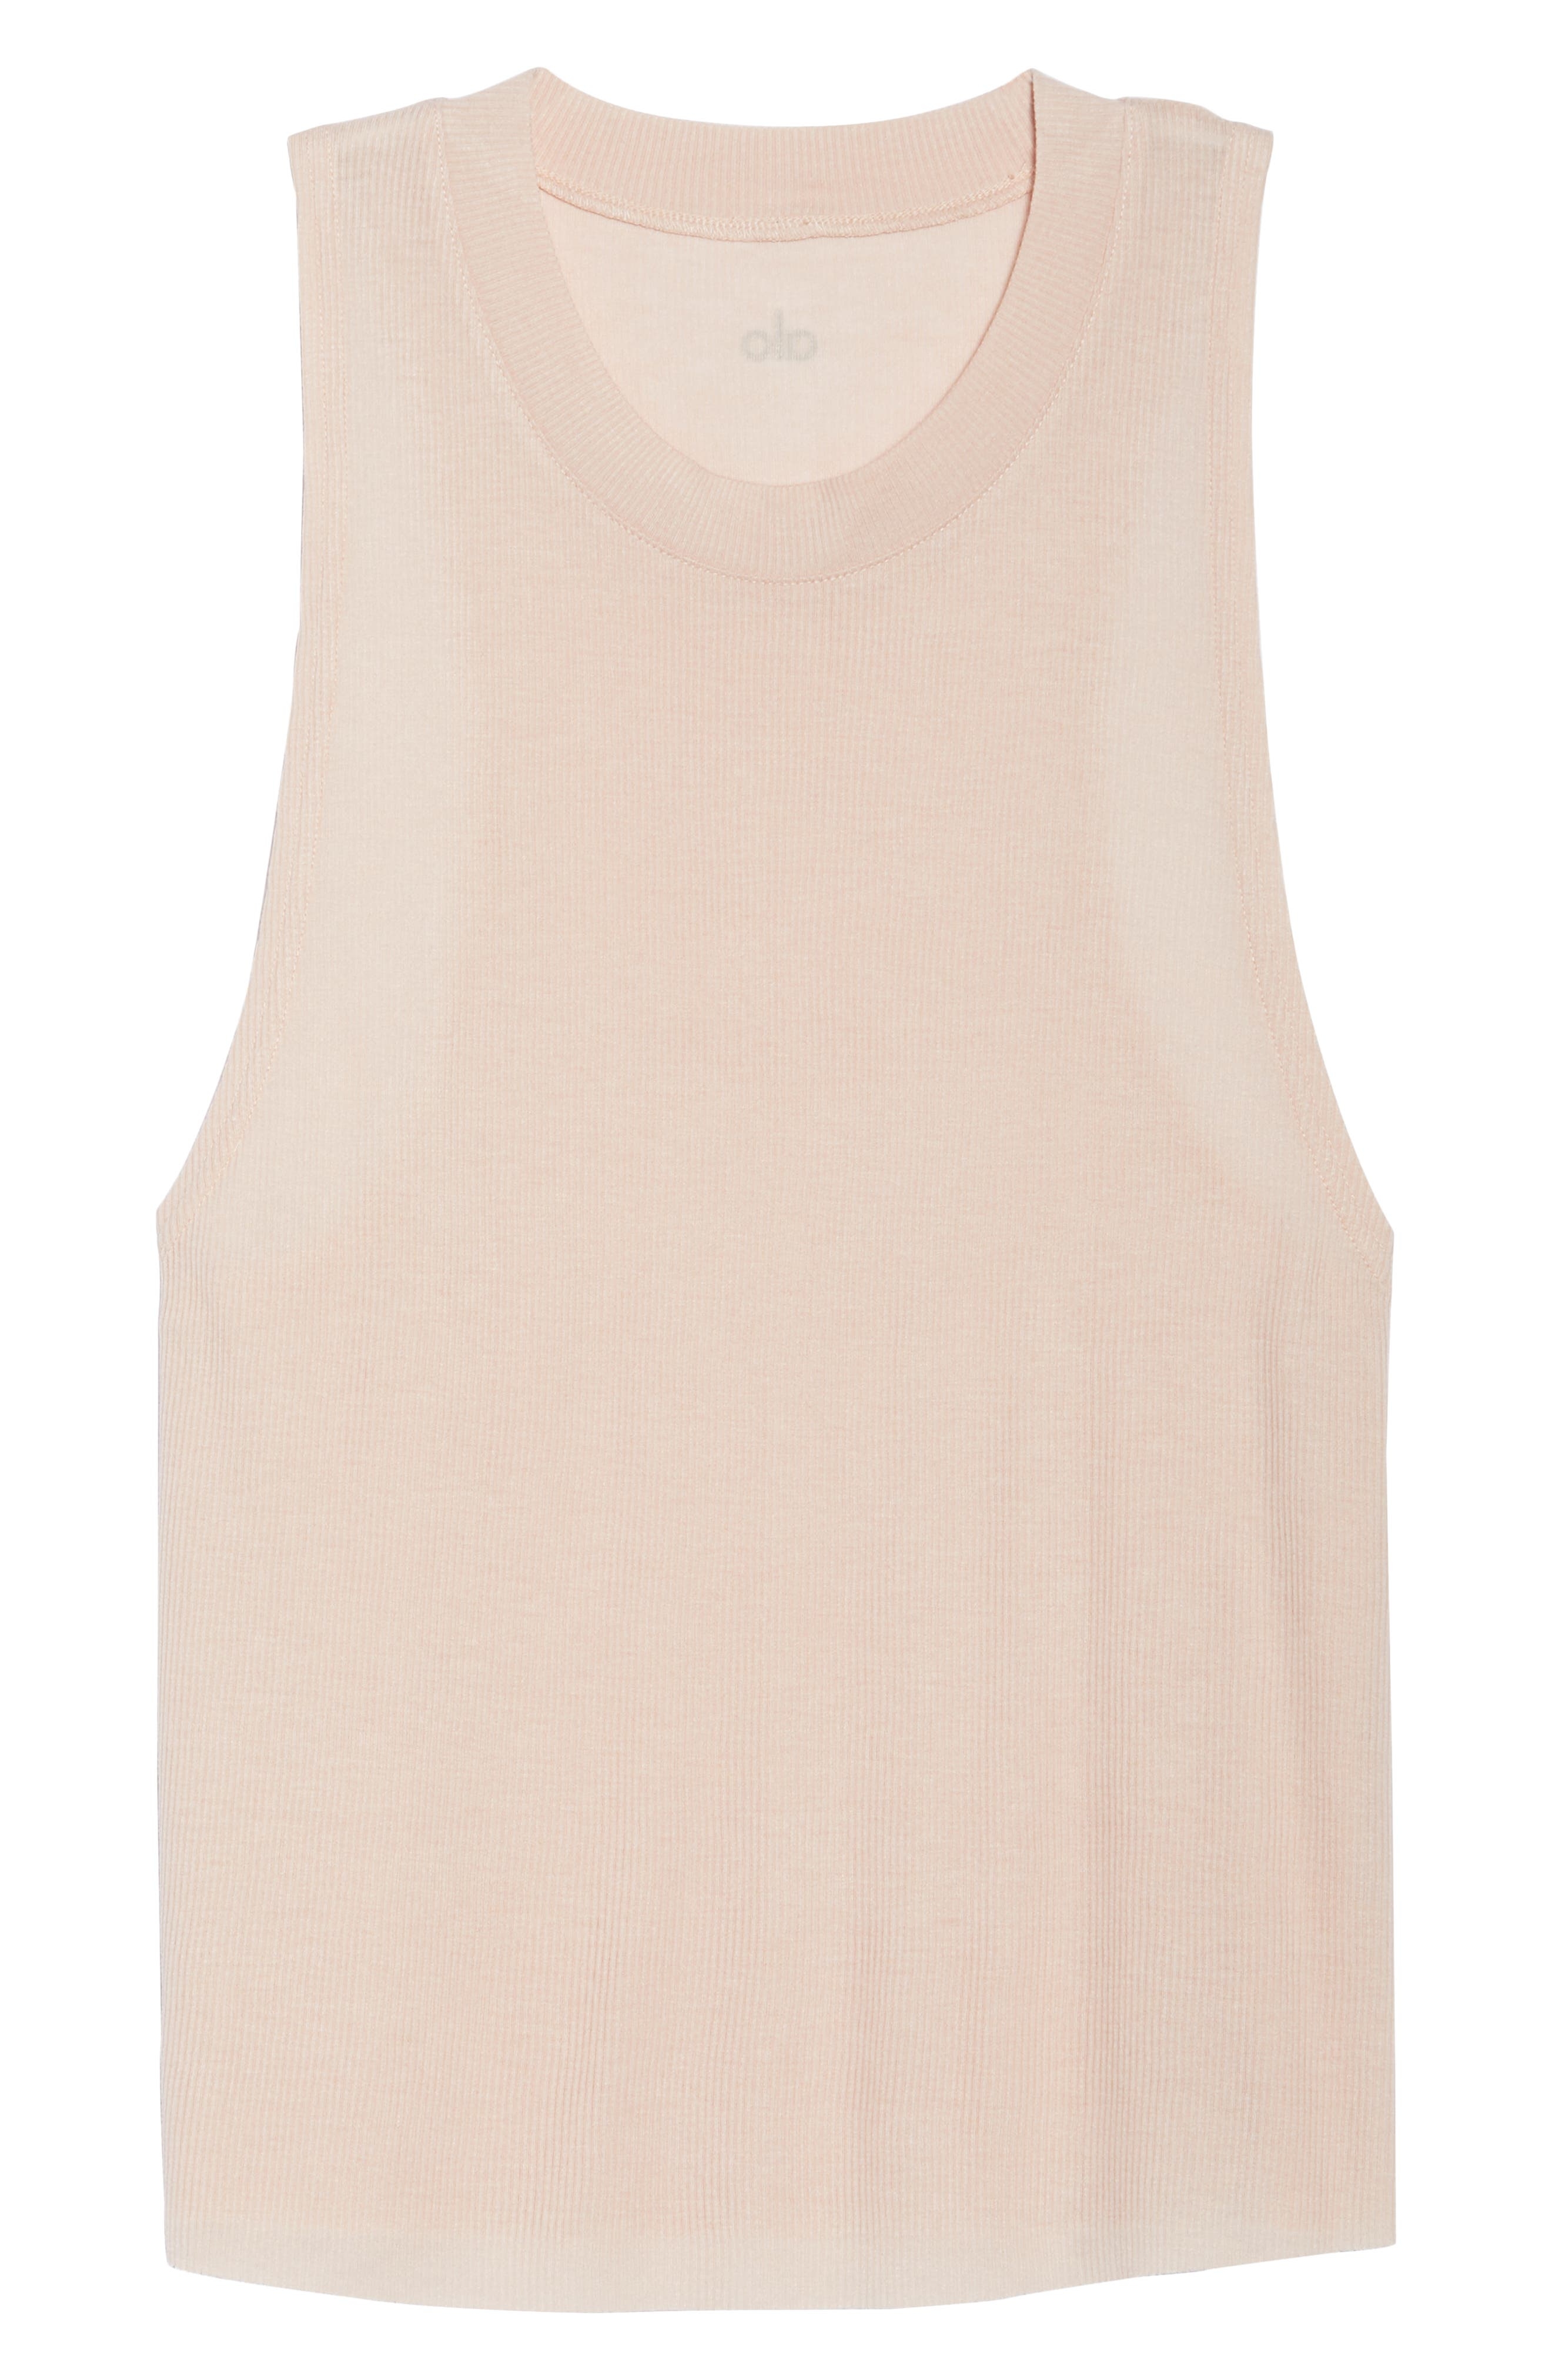 Heat Wave Ribbed Muscle Tee,                             Alternate thumbnail 7, color,                             NECTAR